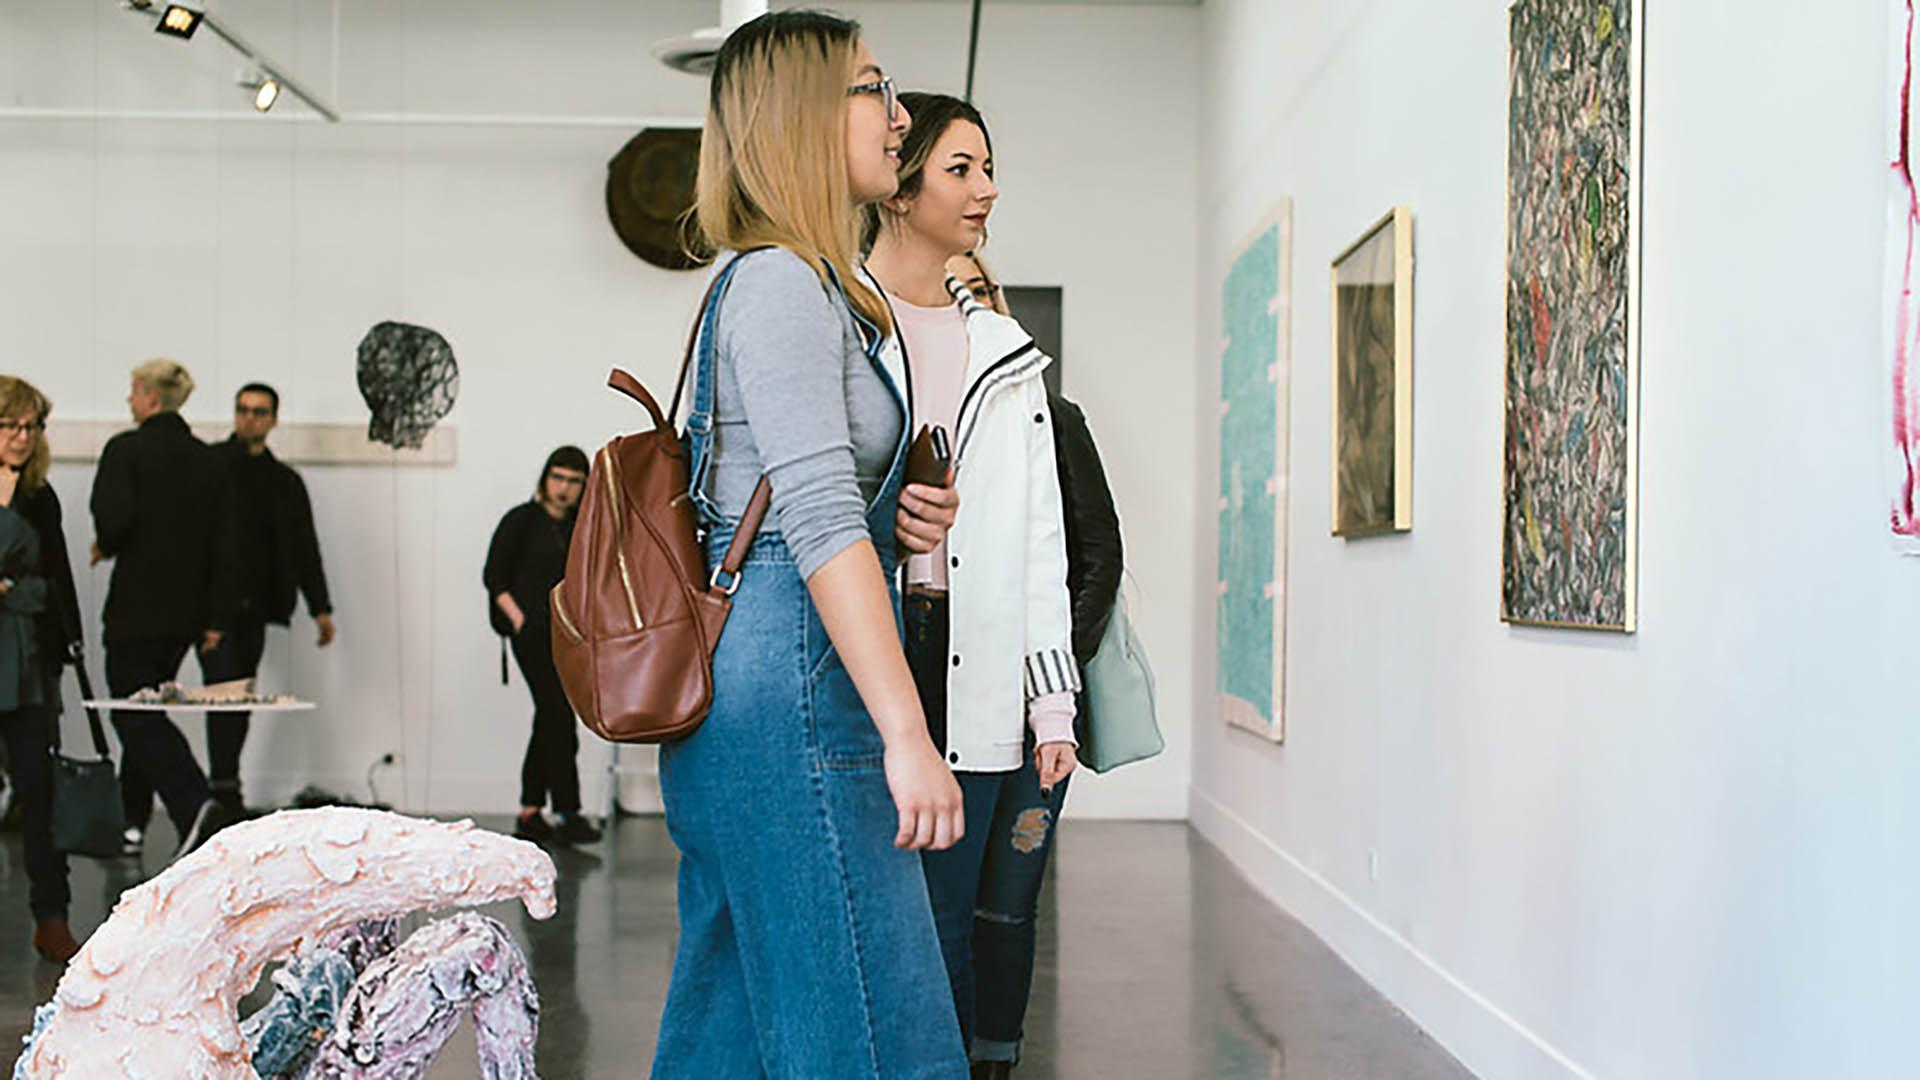 Two women looking at art in gallery space